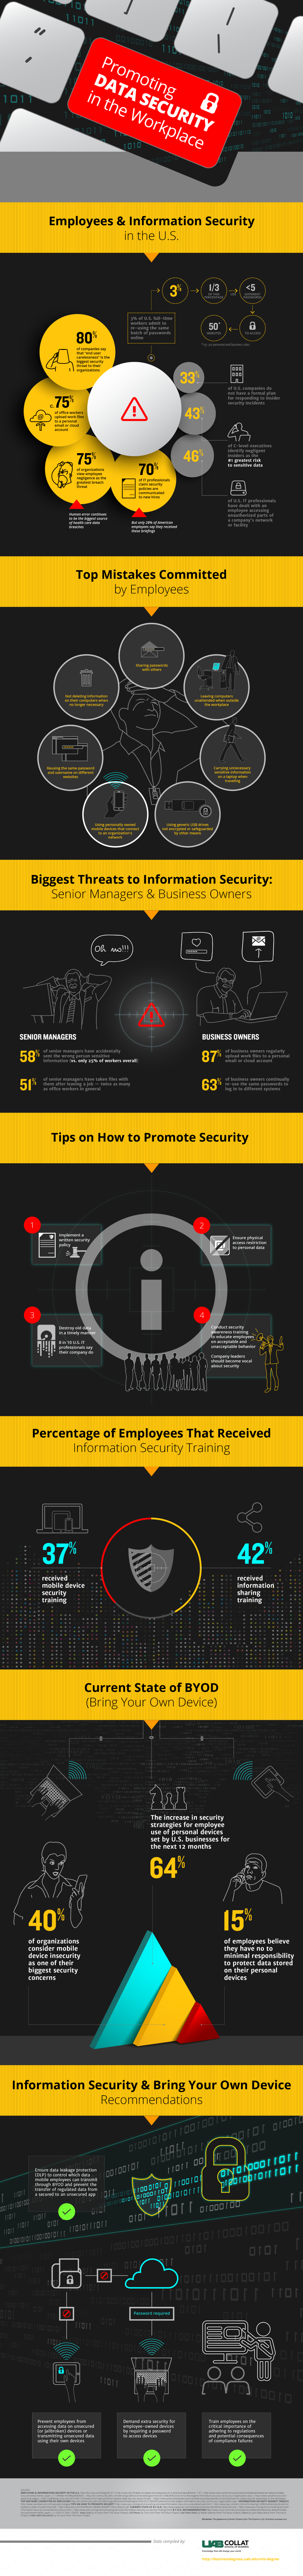 [Infographic] Promoting Data Security in the Workplace